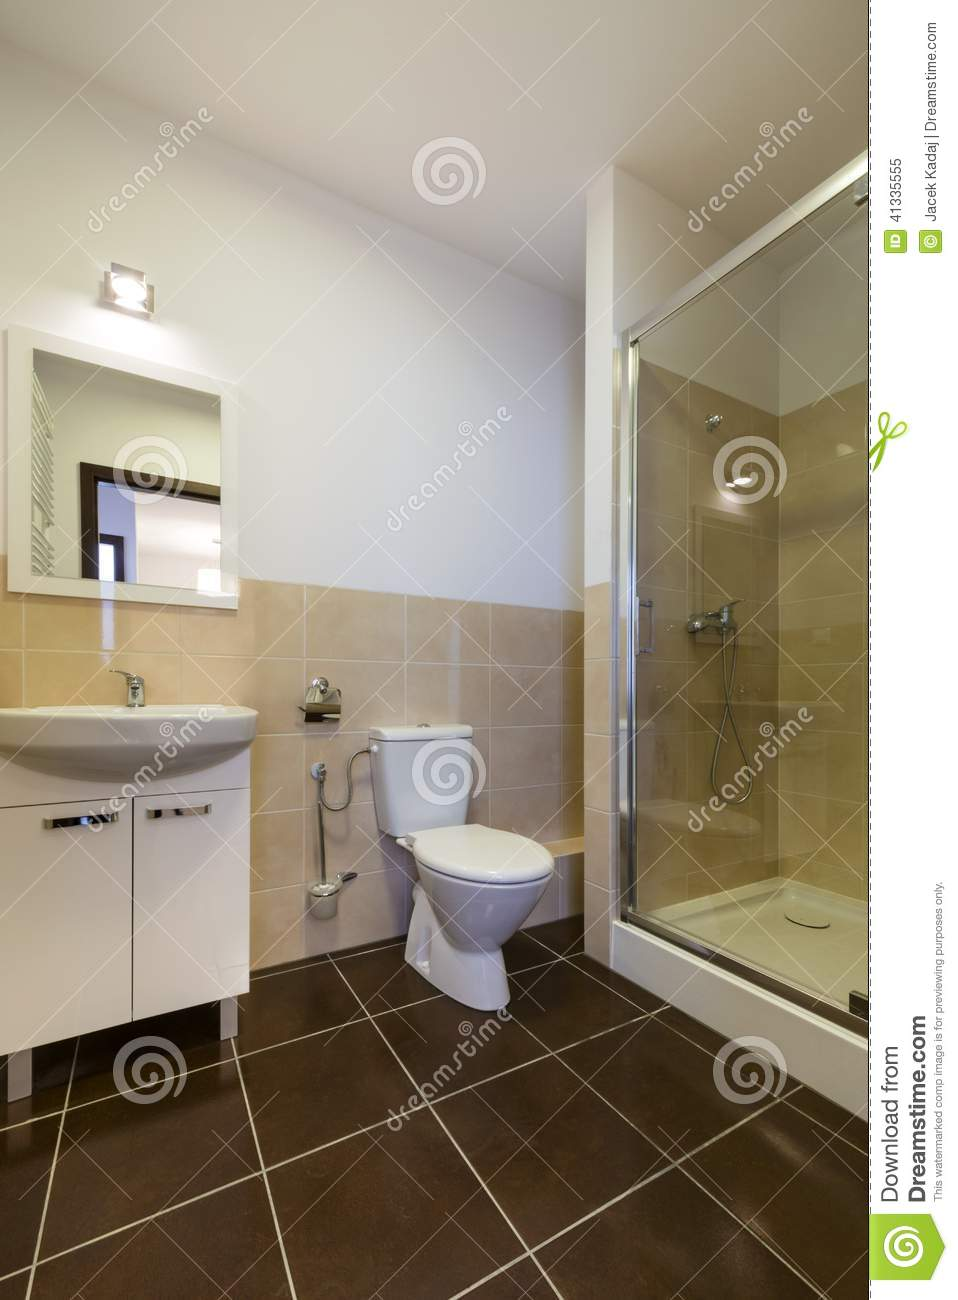 Modern bathroom with sinks toilet and shower stock image for Salle de bain avec jacuzzi et douche